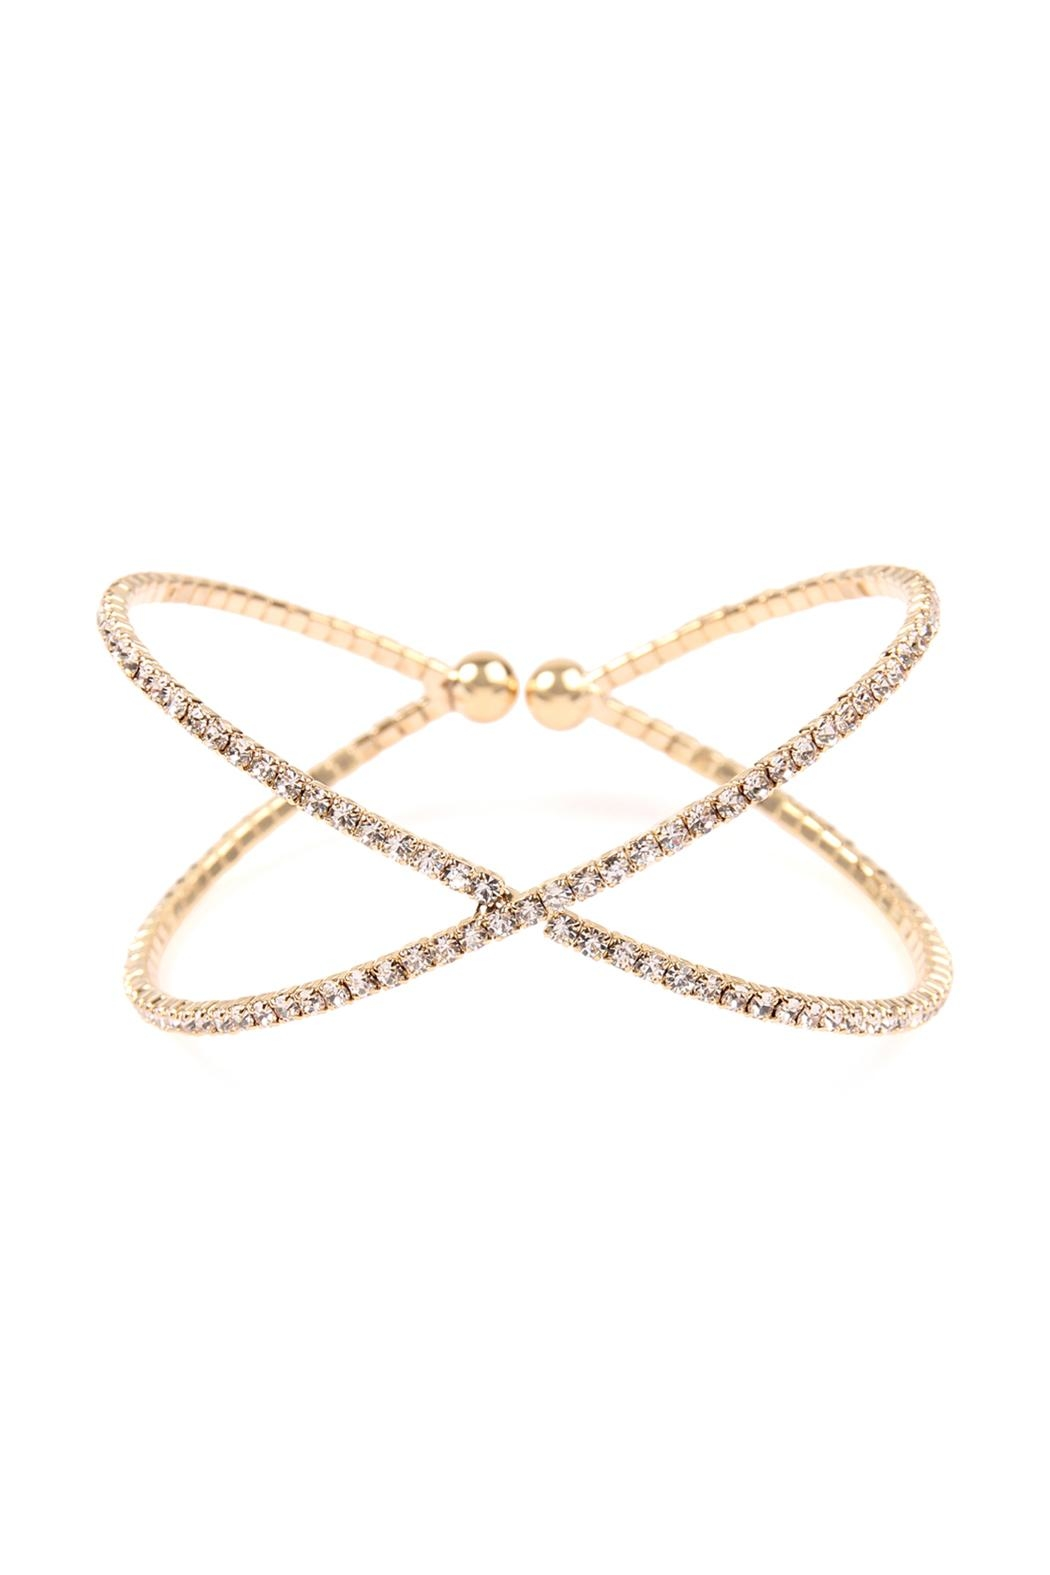 riah fashion rhinestone cuff bracelet from california shoptiques